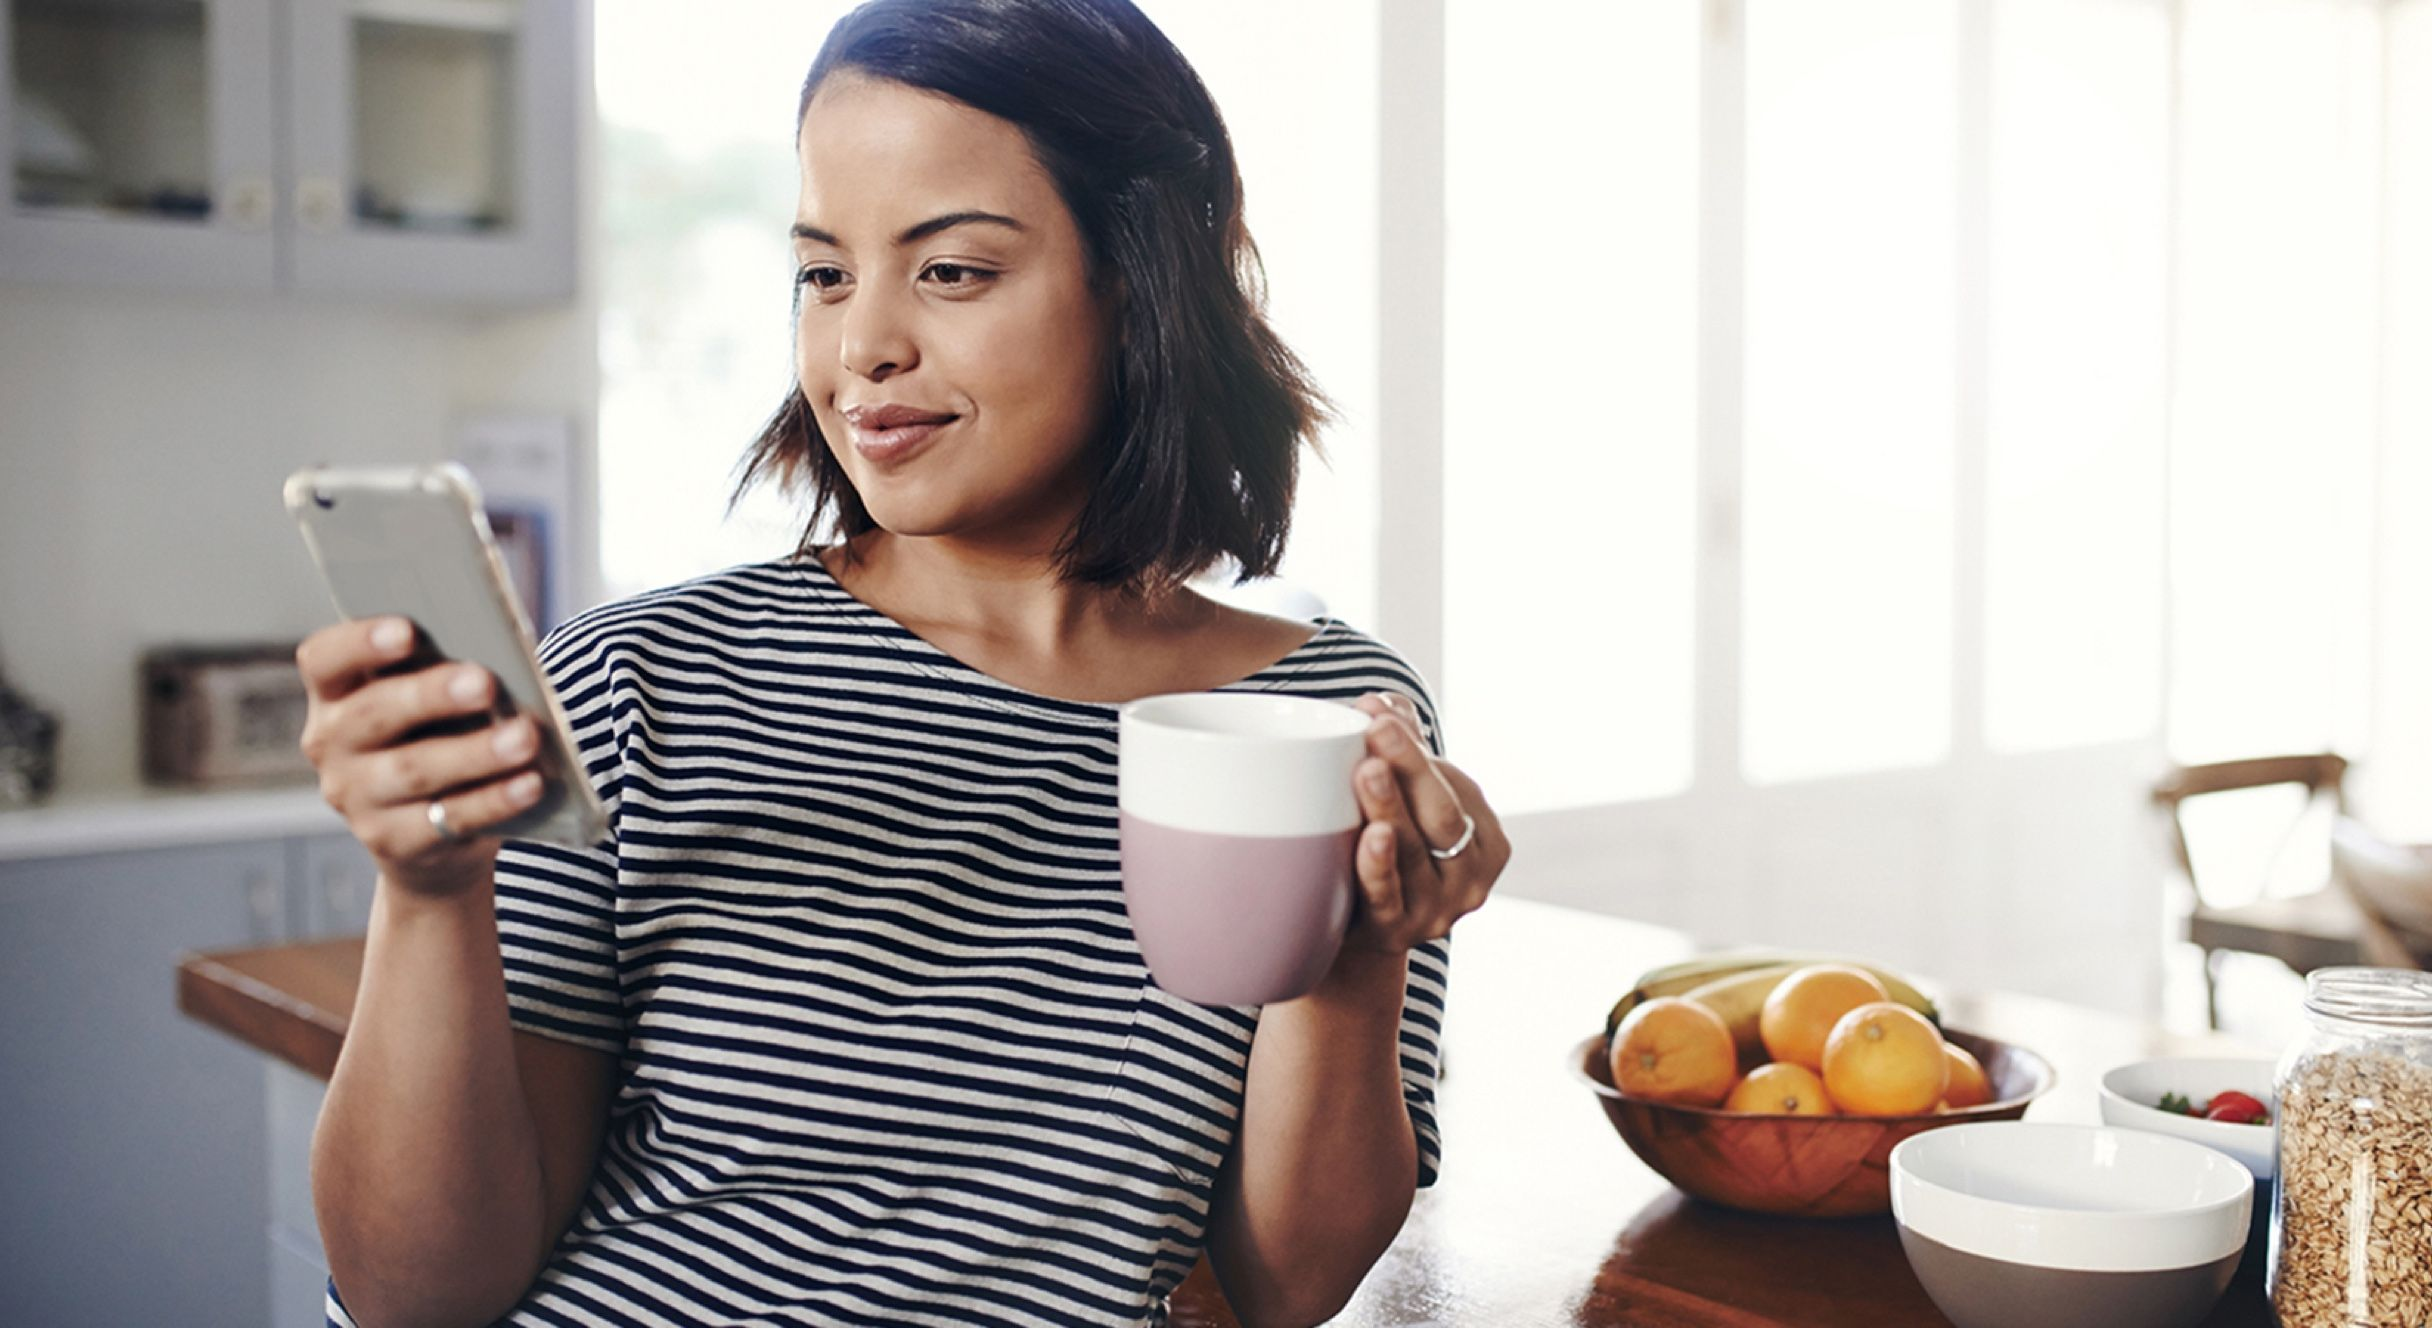 Woman looking at her phone holding a cup of tea